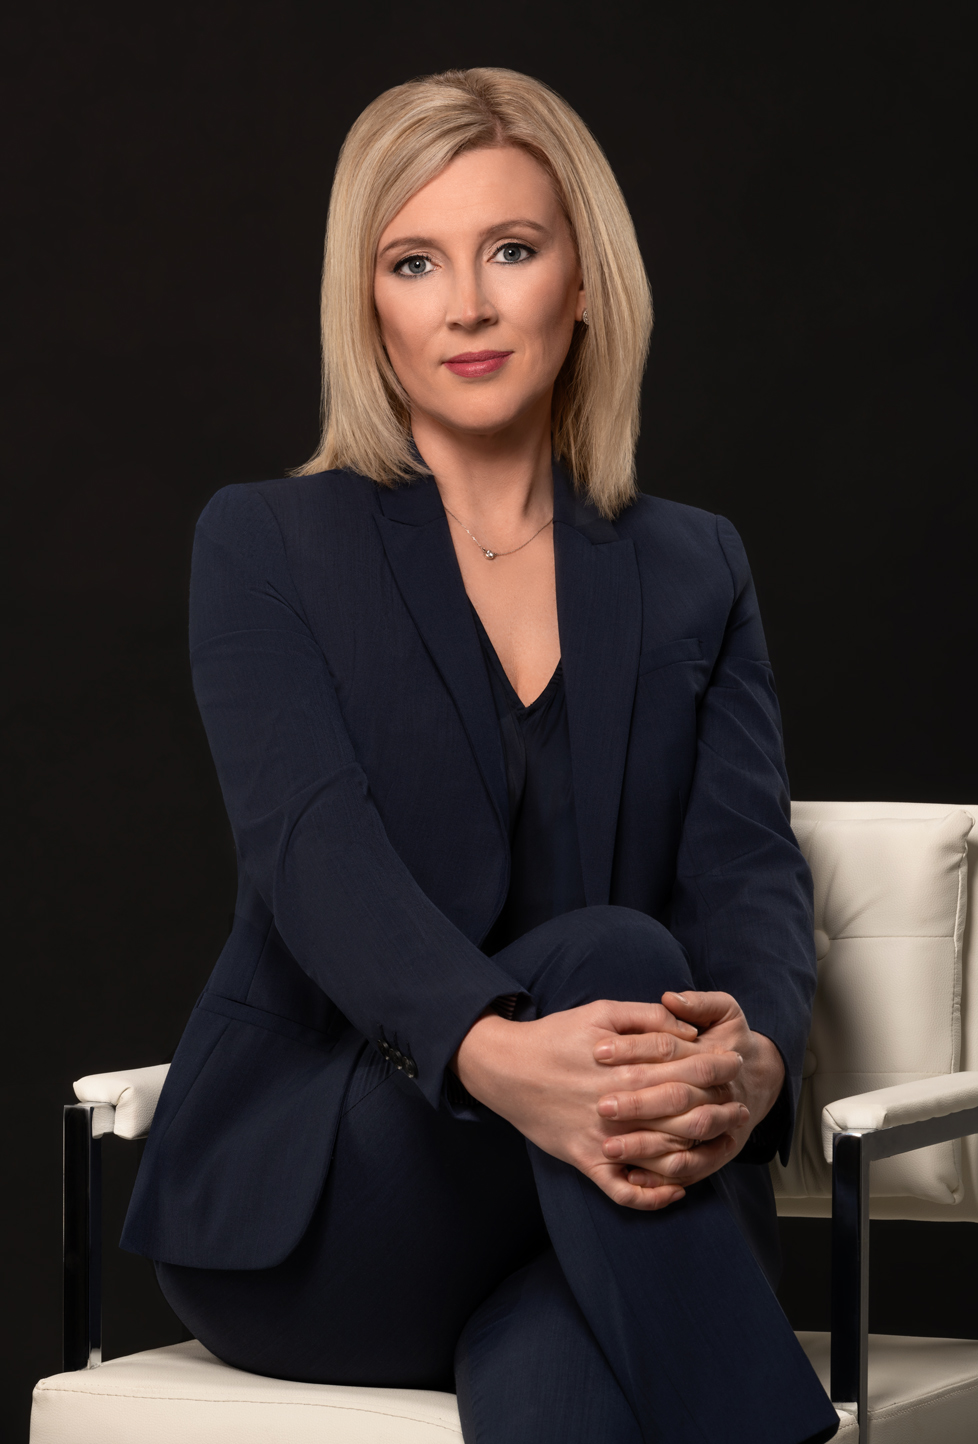 business headshot of a female executive